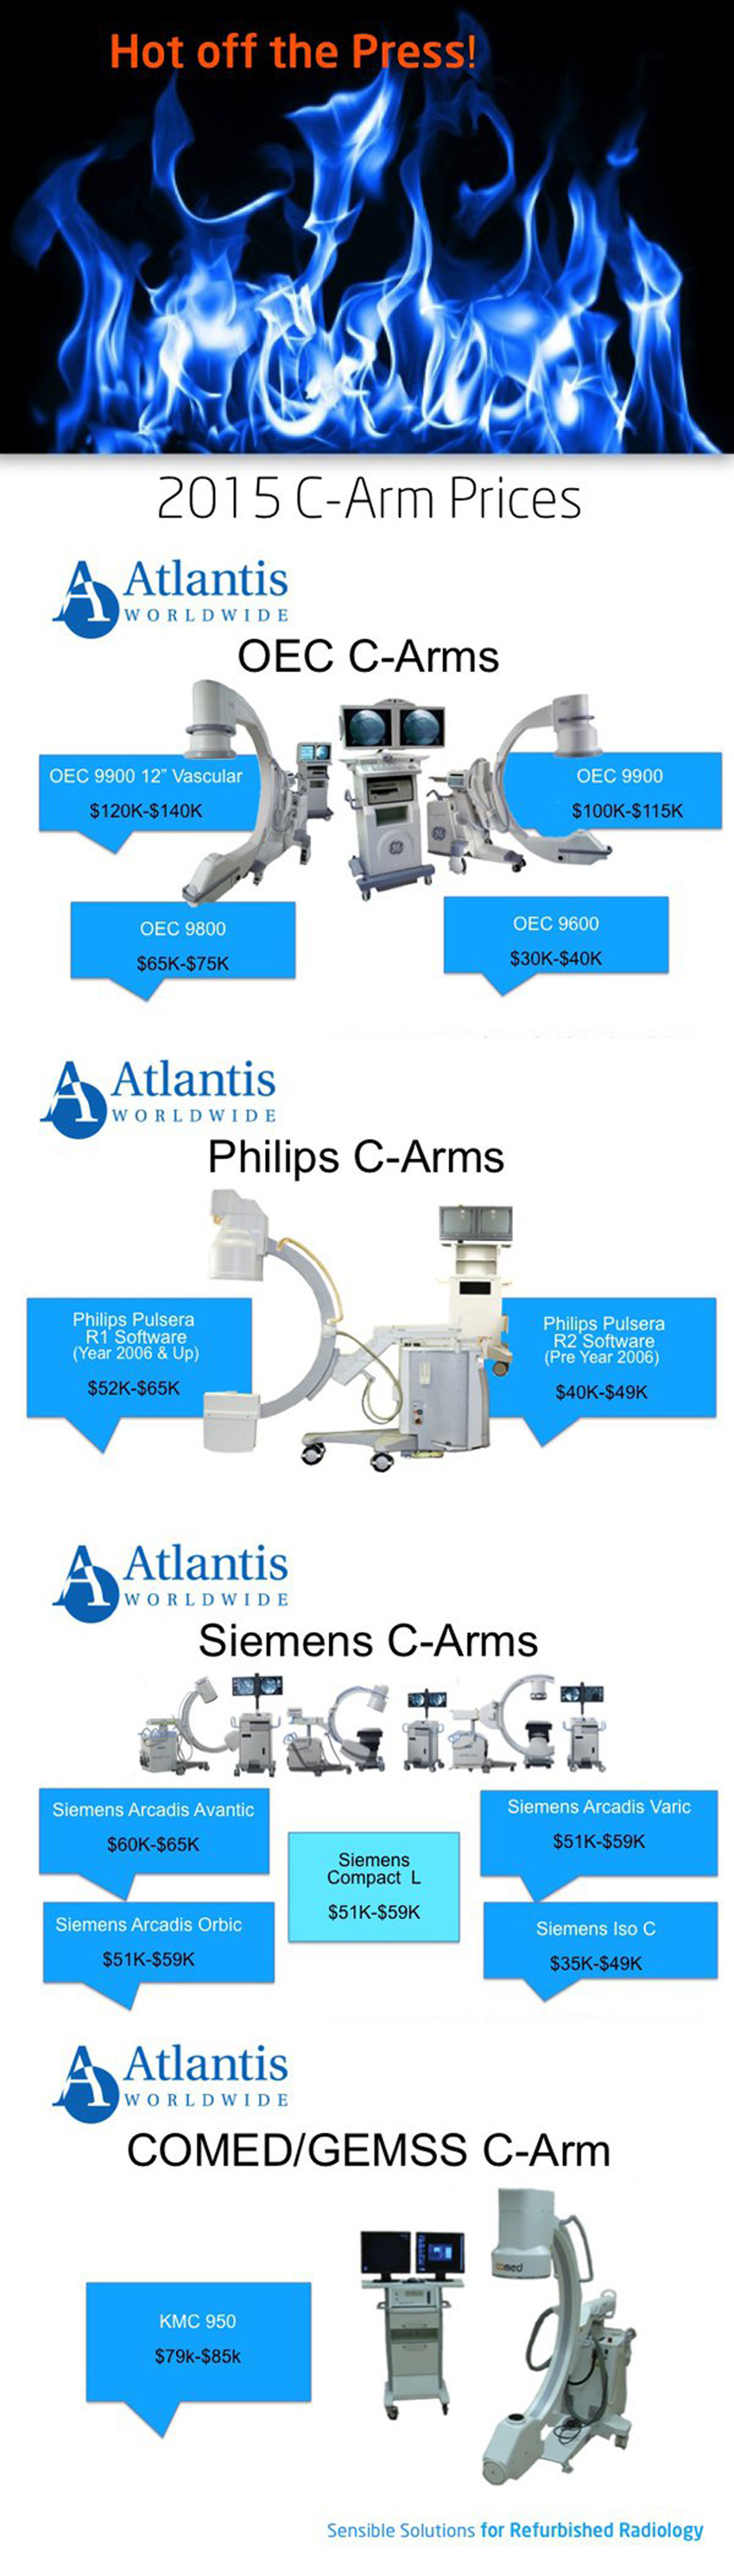 2015_C-Arm_Prices_infographic_1